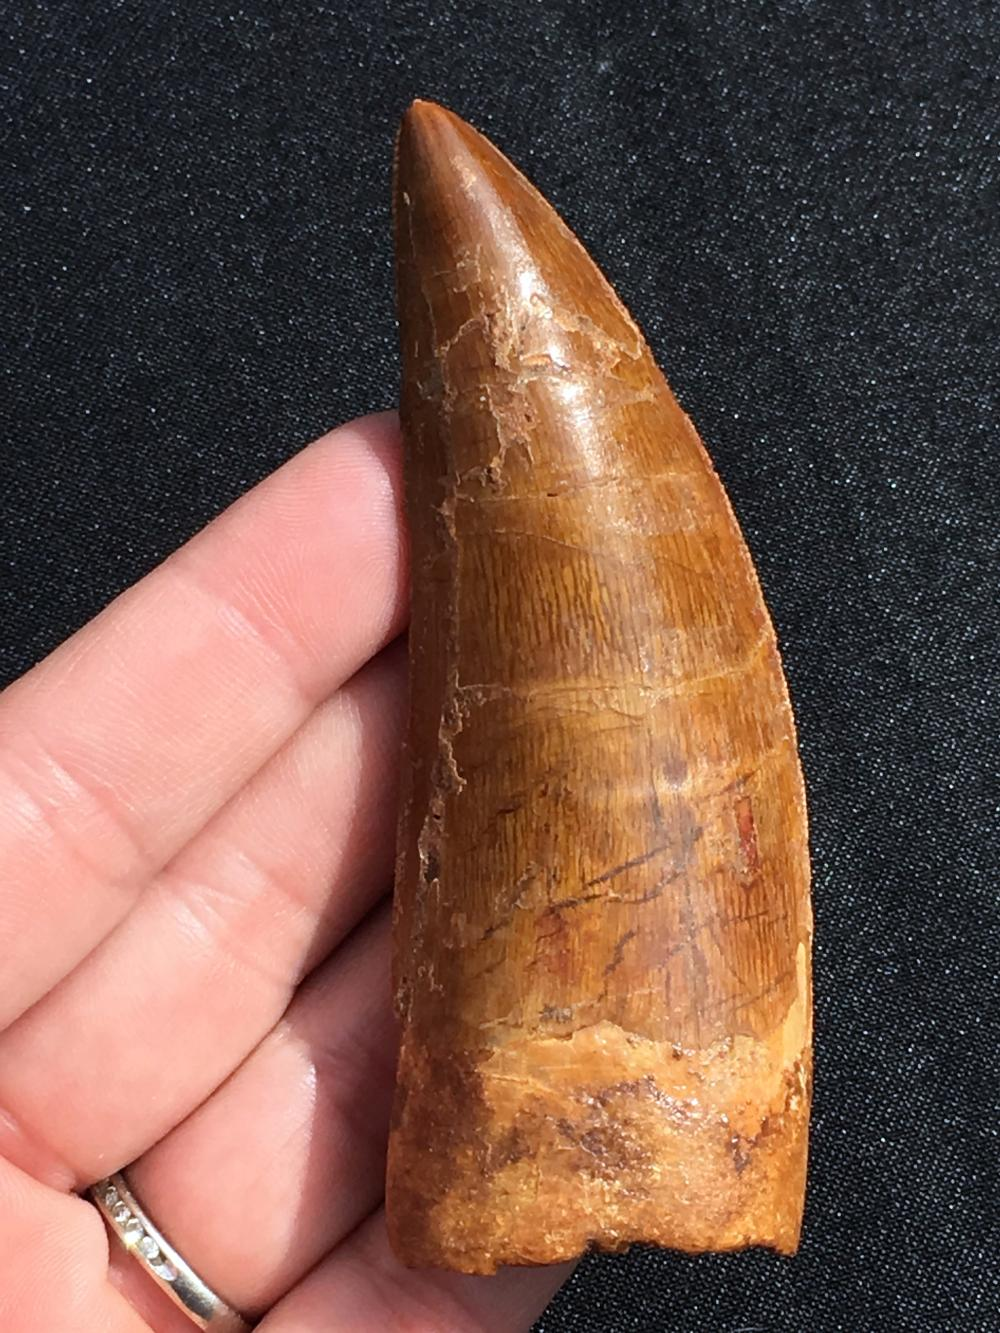 Dinosaur, Tooth, Fossil, Natural, Collectible, Specimen, Carcharodontosaurus